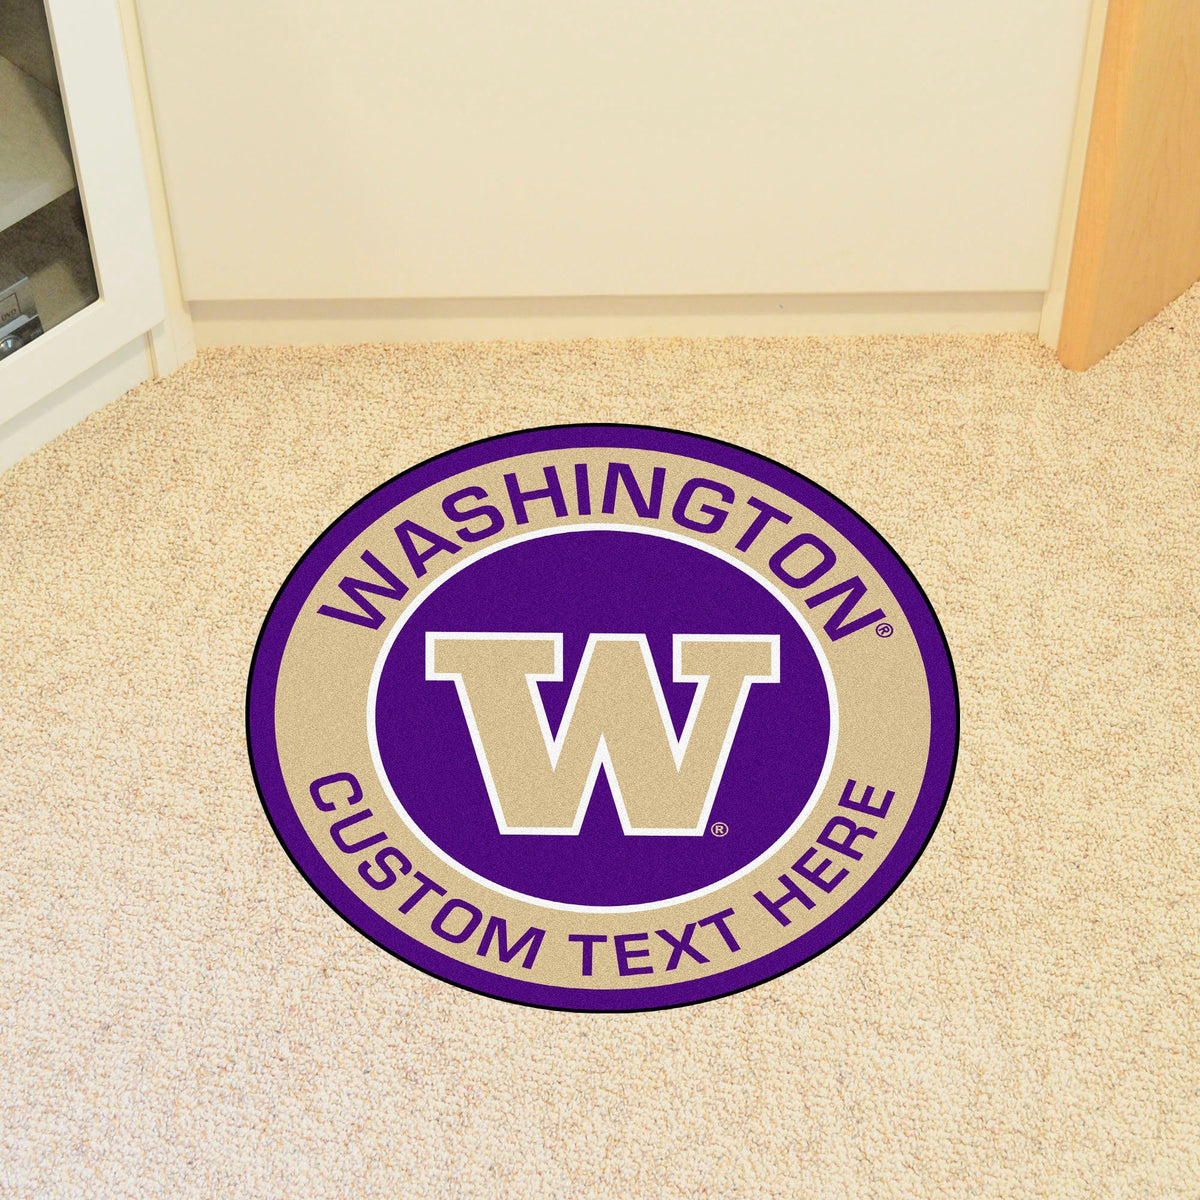 Collegiate Personalized Roundel Mat Personalized Roundel Mat Fan Mats University of Washington